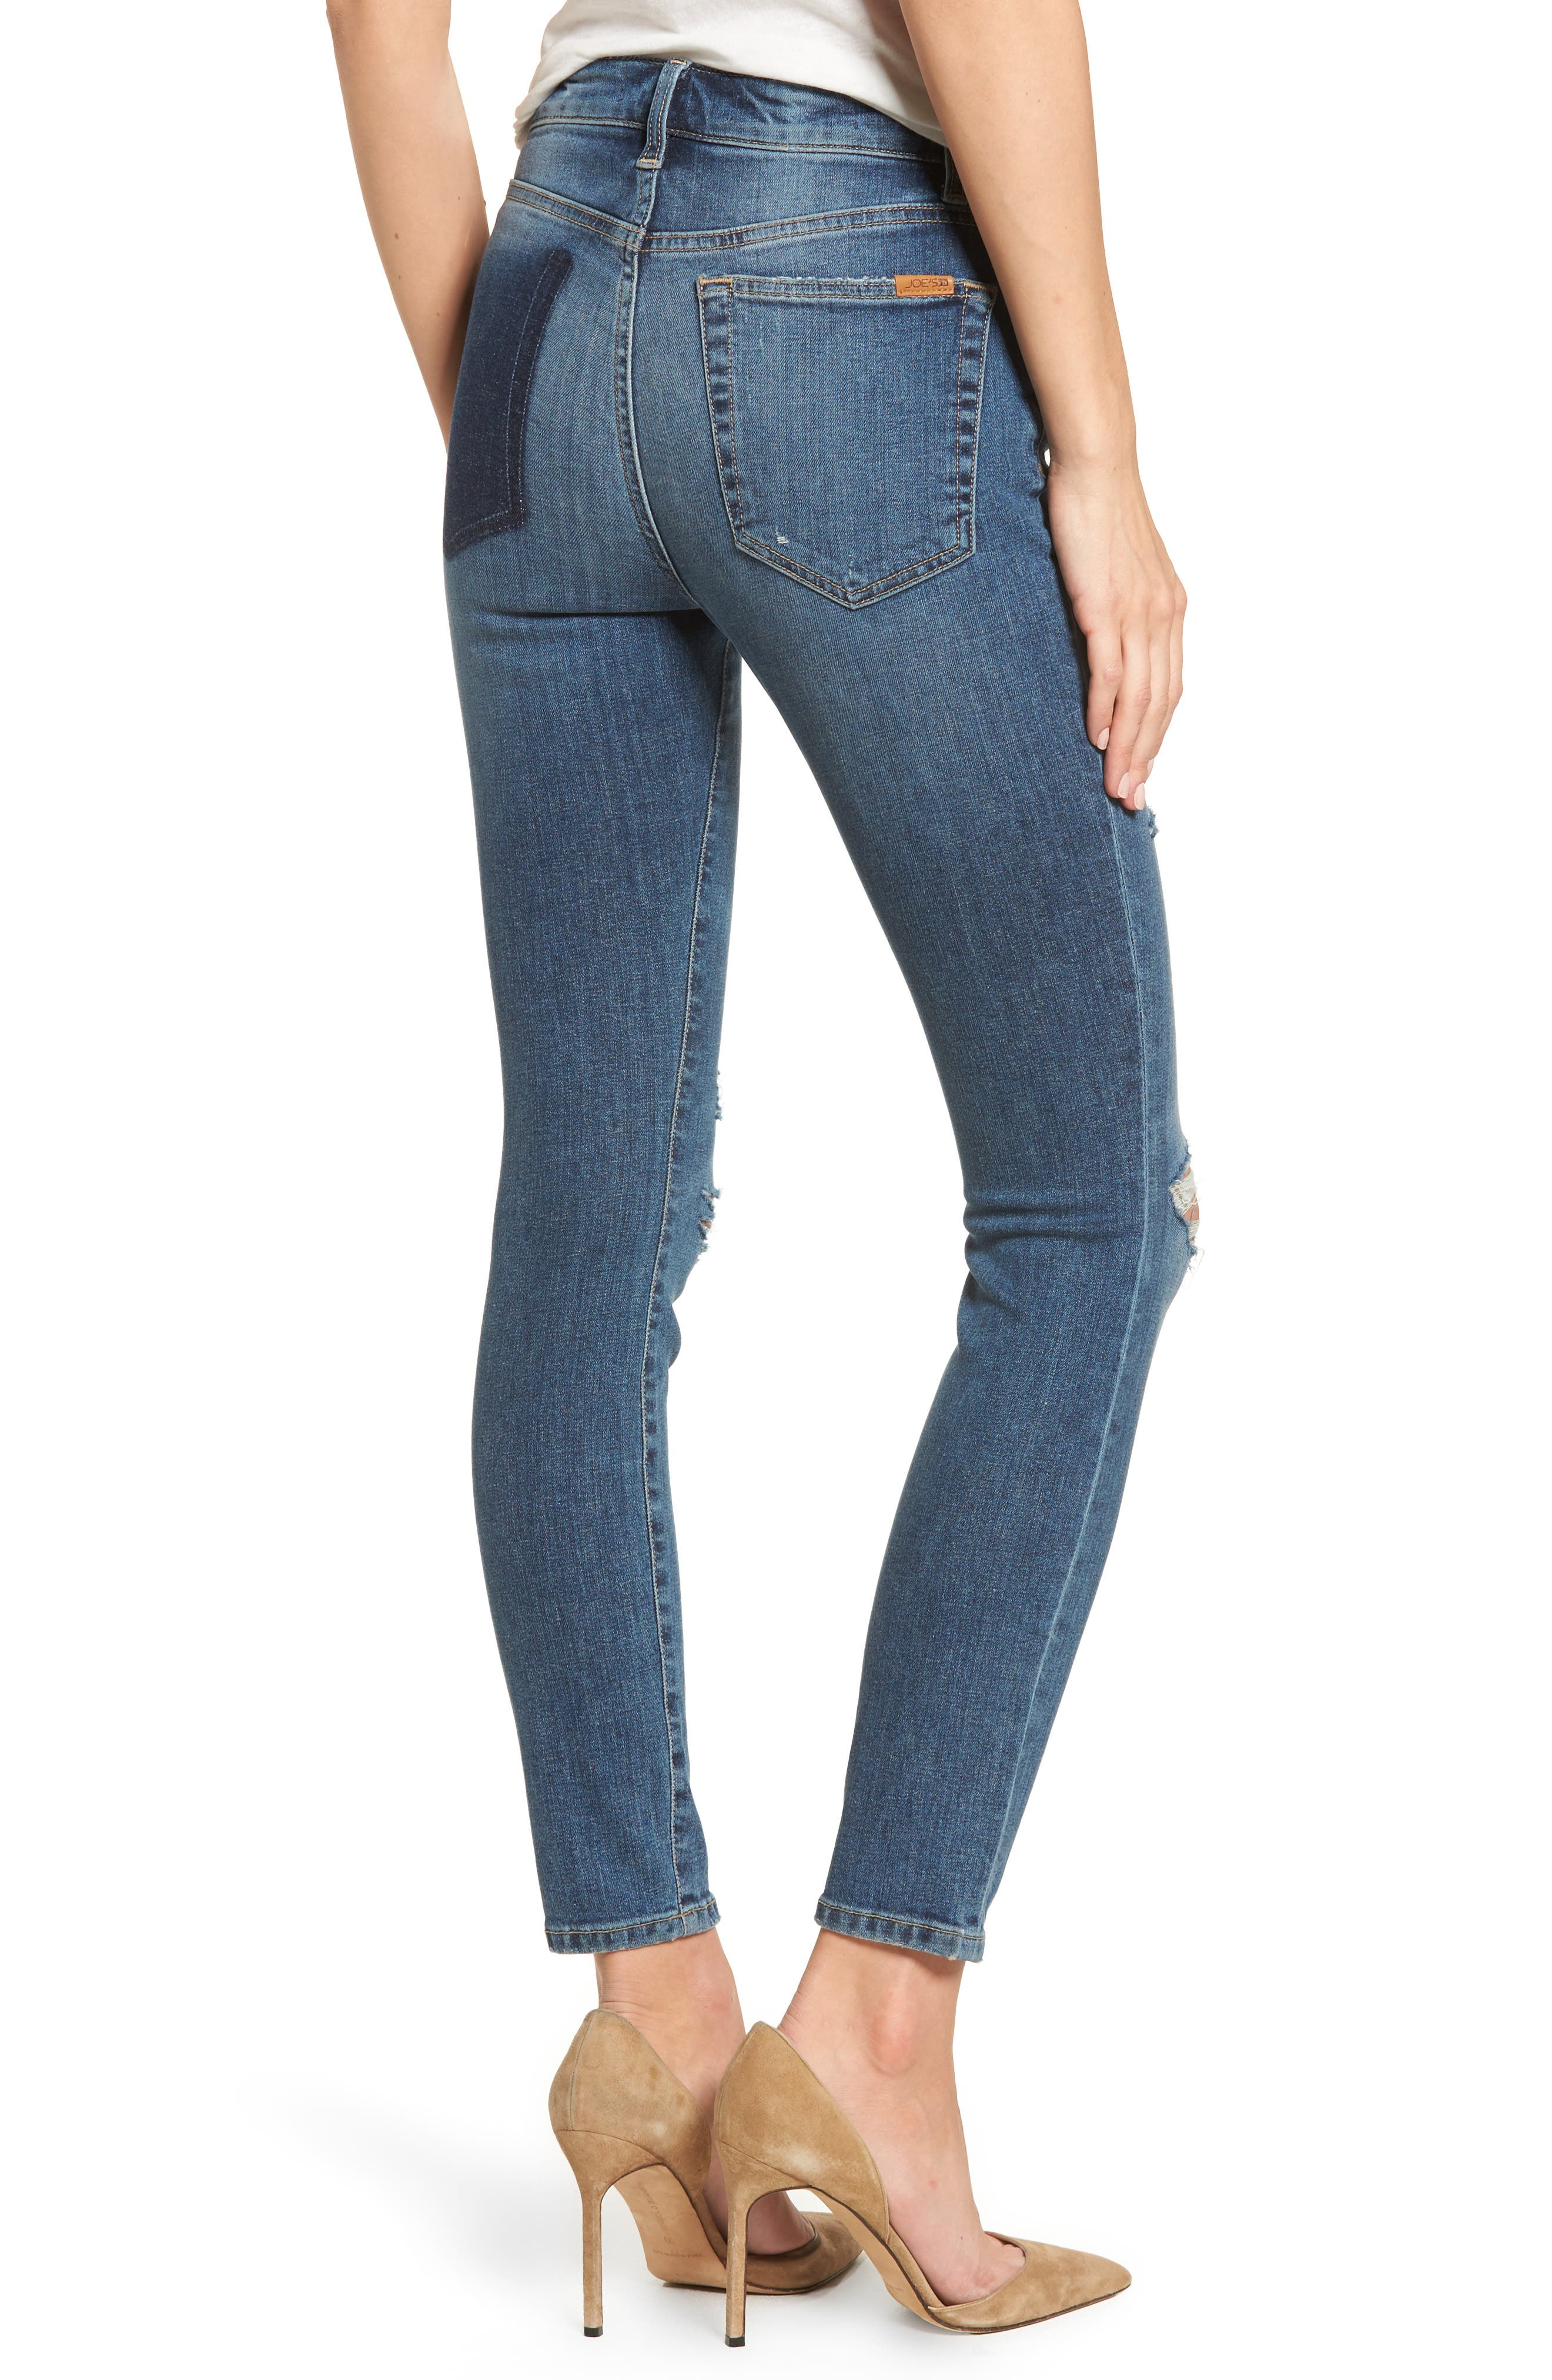 Charlie High Waist Ankle Skinny Jeans,                             Alternate thumbnail 2, color,                             415